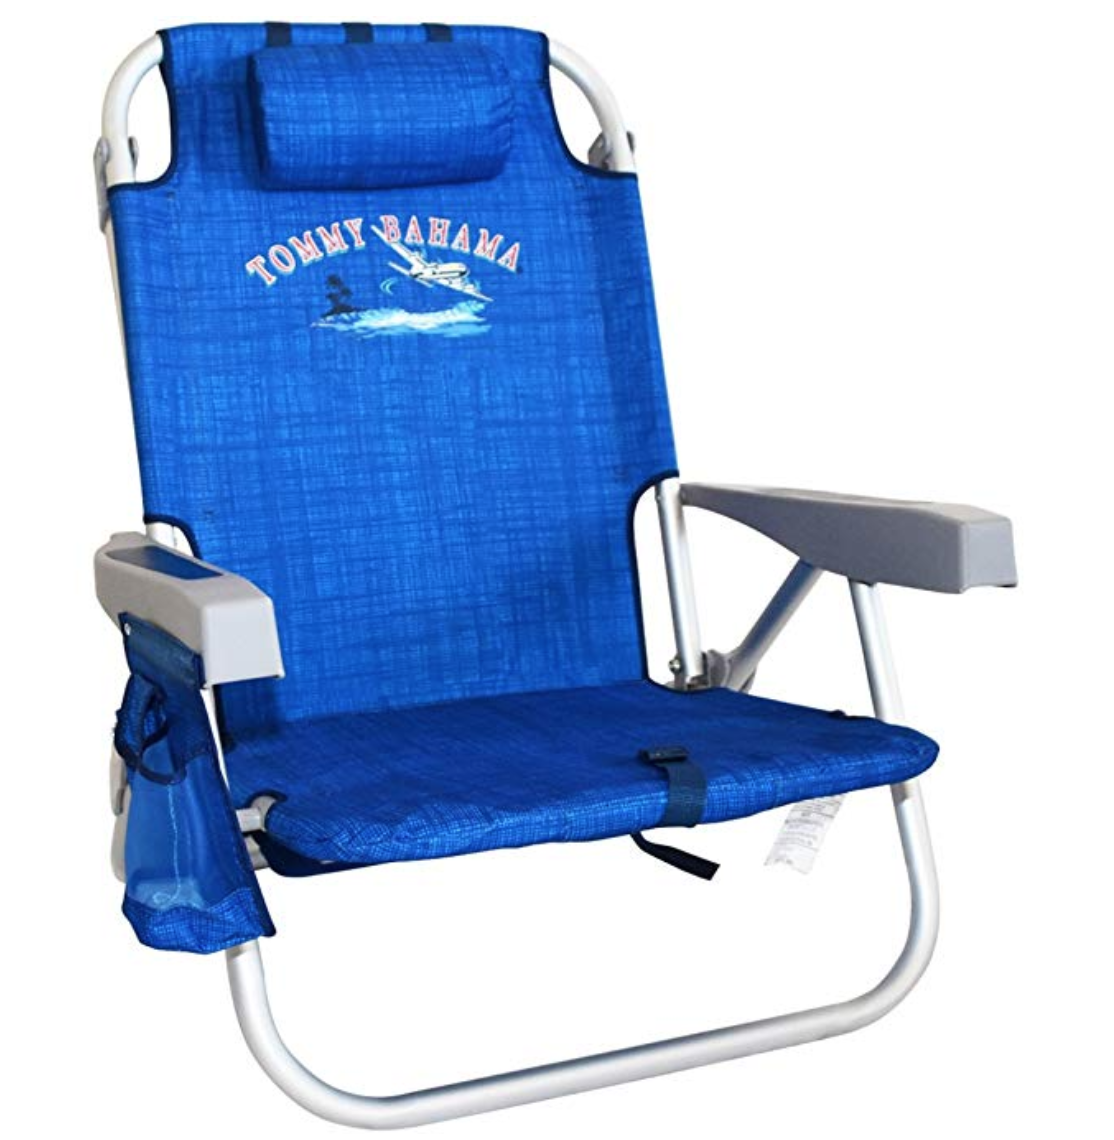 Tommy Bahama Backpack Cooler Camping Chair